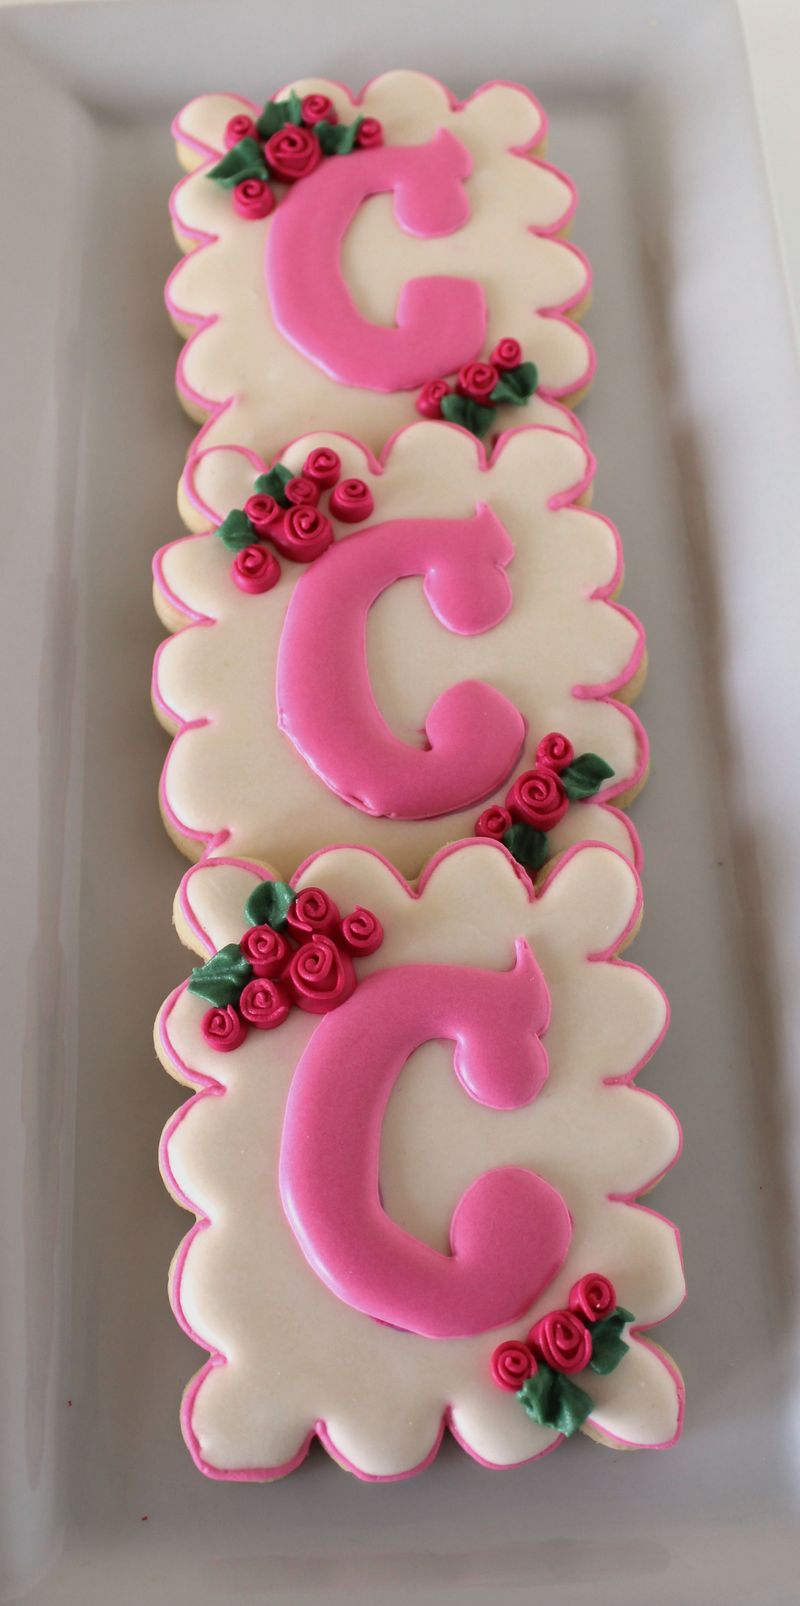 Spring Inspired Monogram Cookies | The Crafting Foodie